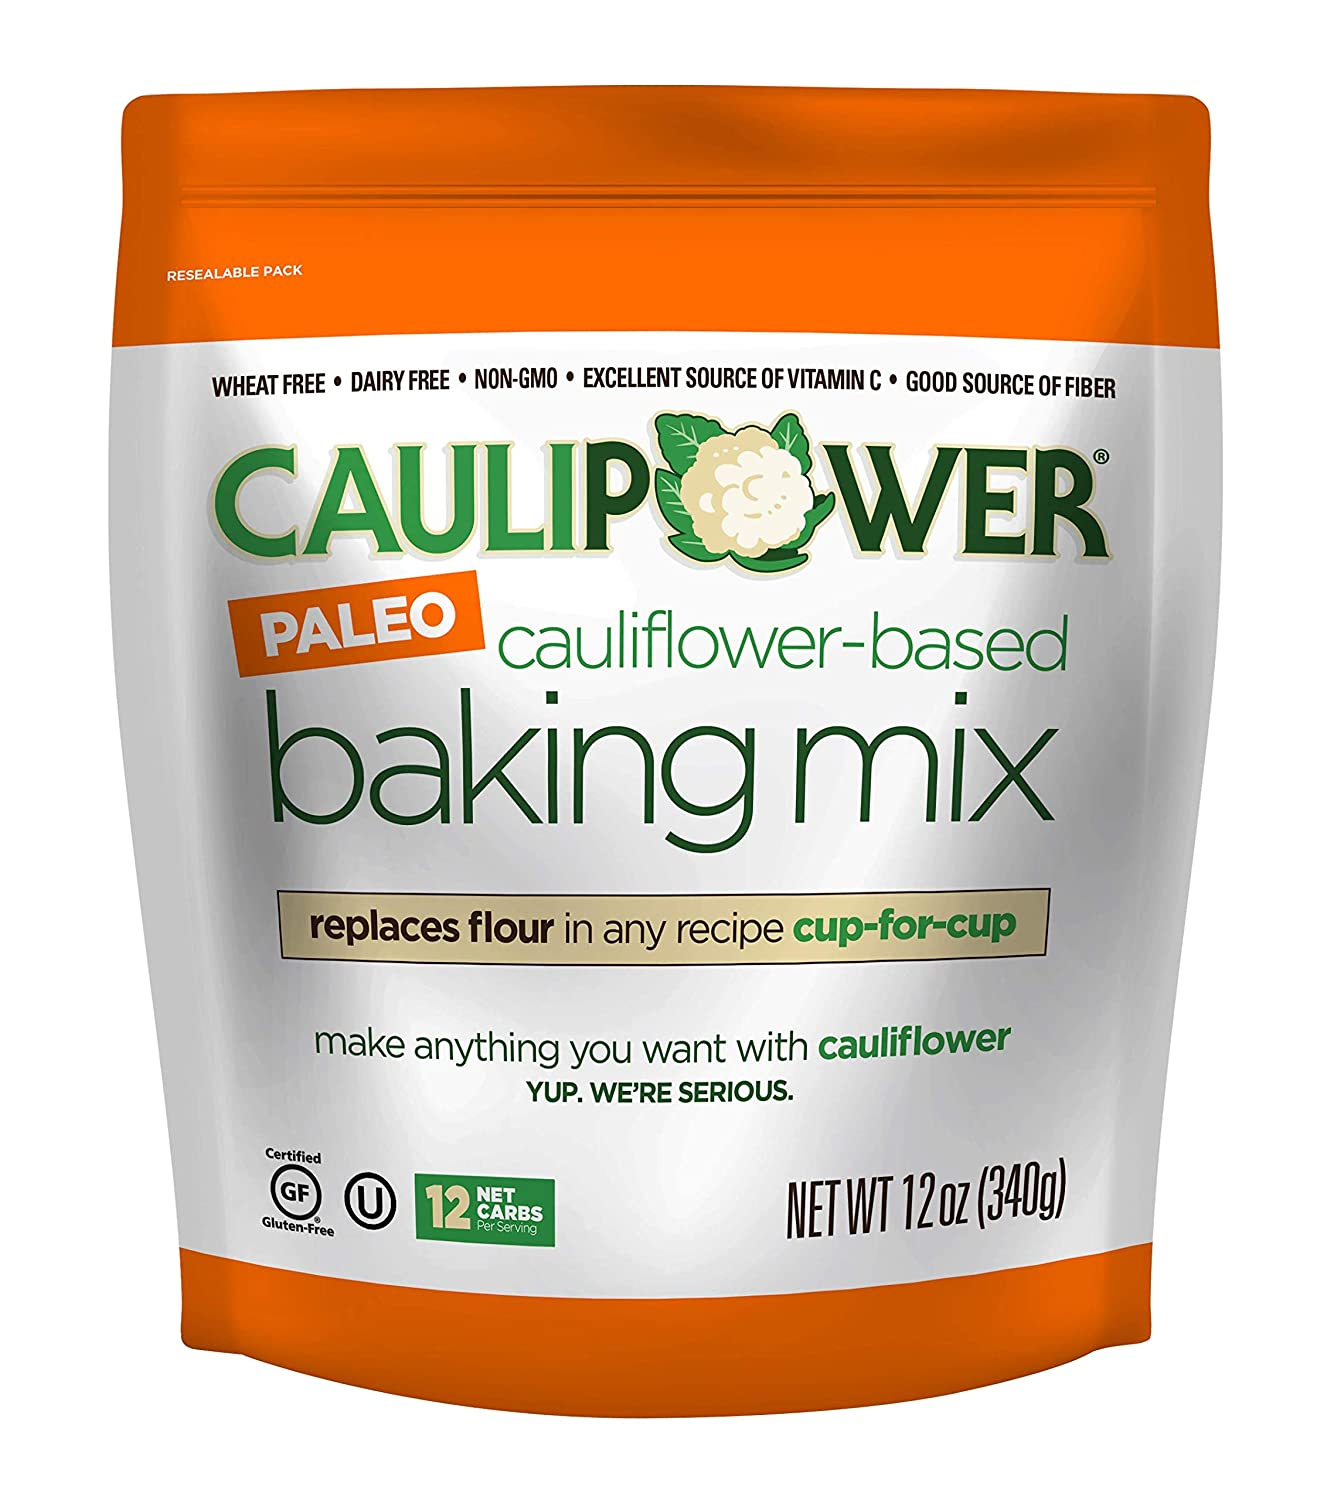 Cauliflower-Based Baking Mix